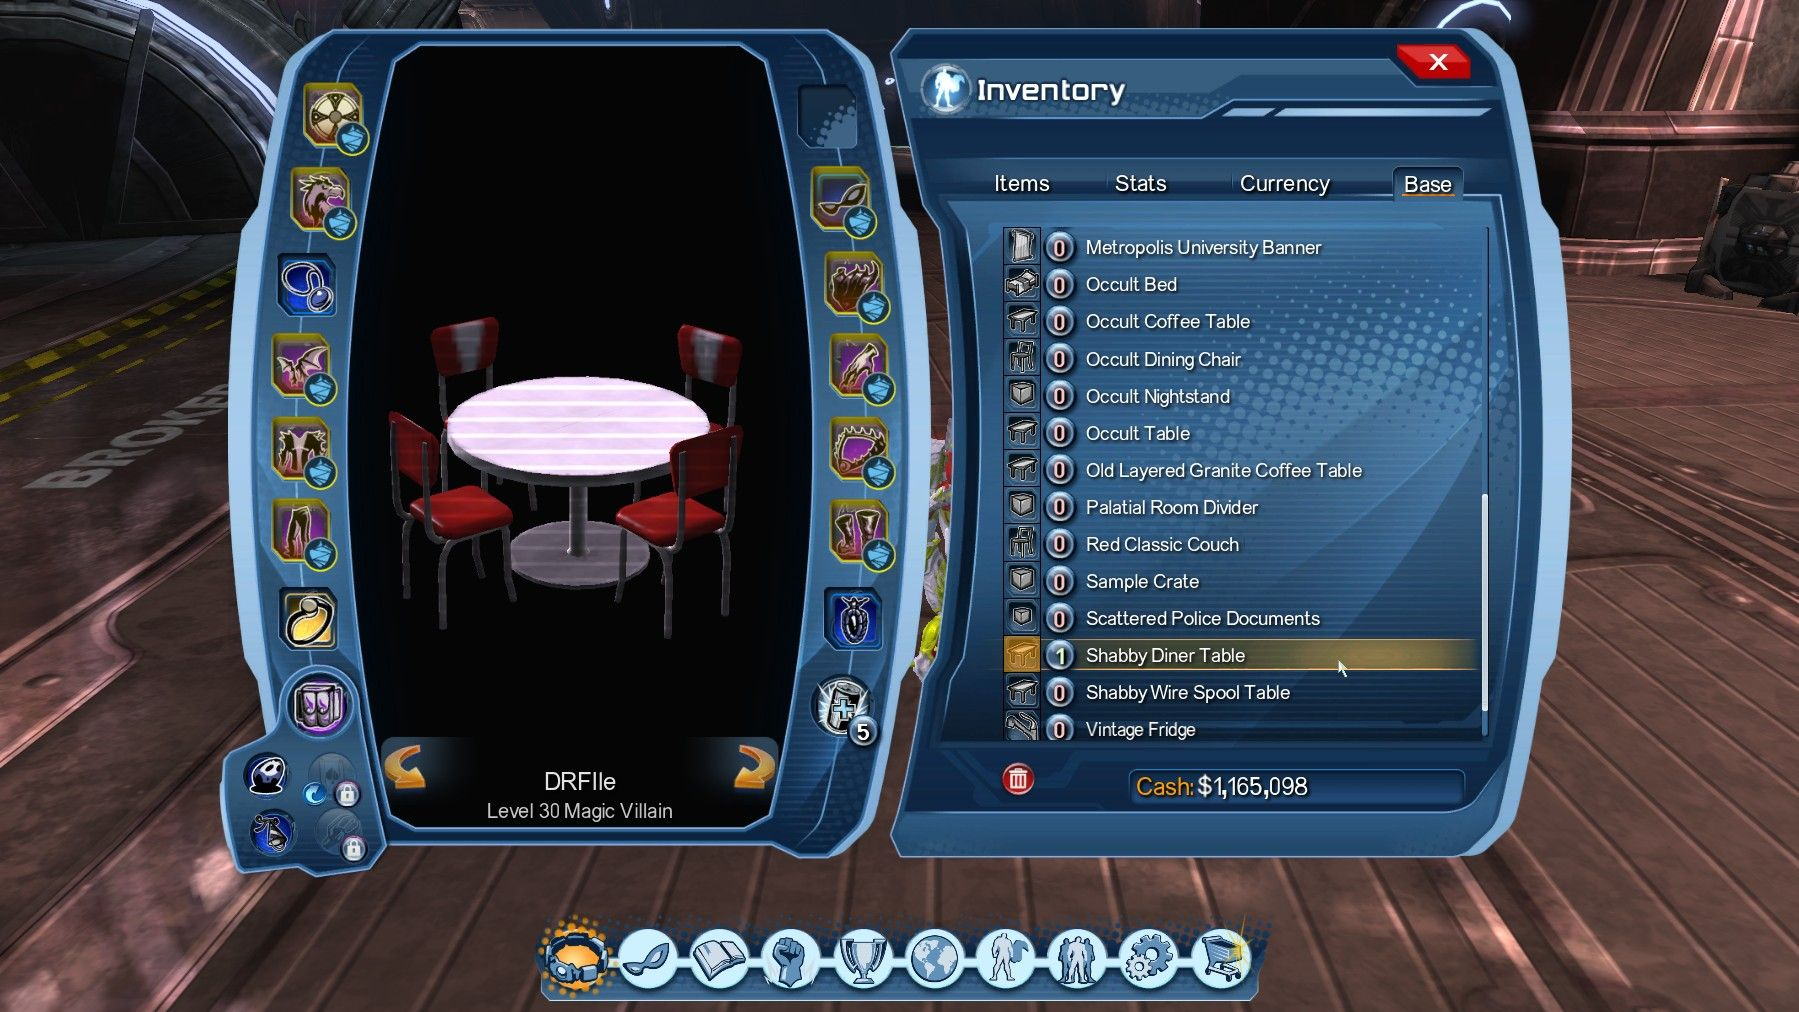 dcuo roulette table casino portal shabby diner furniture dcgame occult accent location kestell octagon poker with folding legs custom features our exceptionally durable sur loc